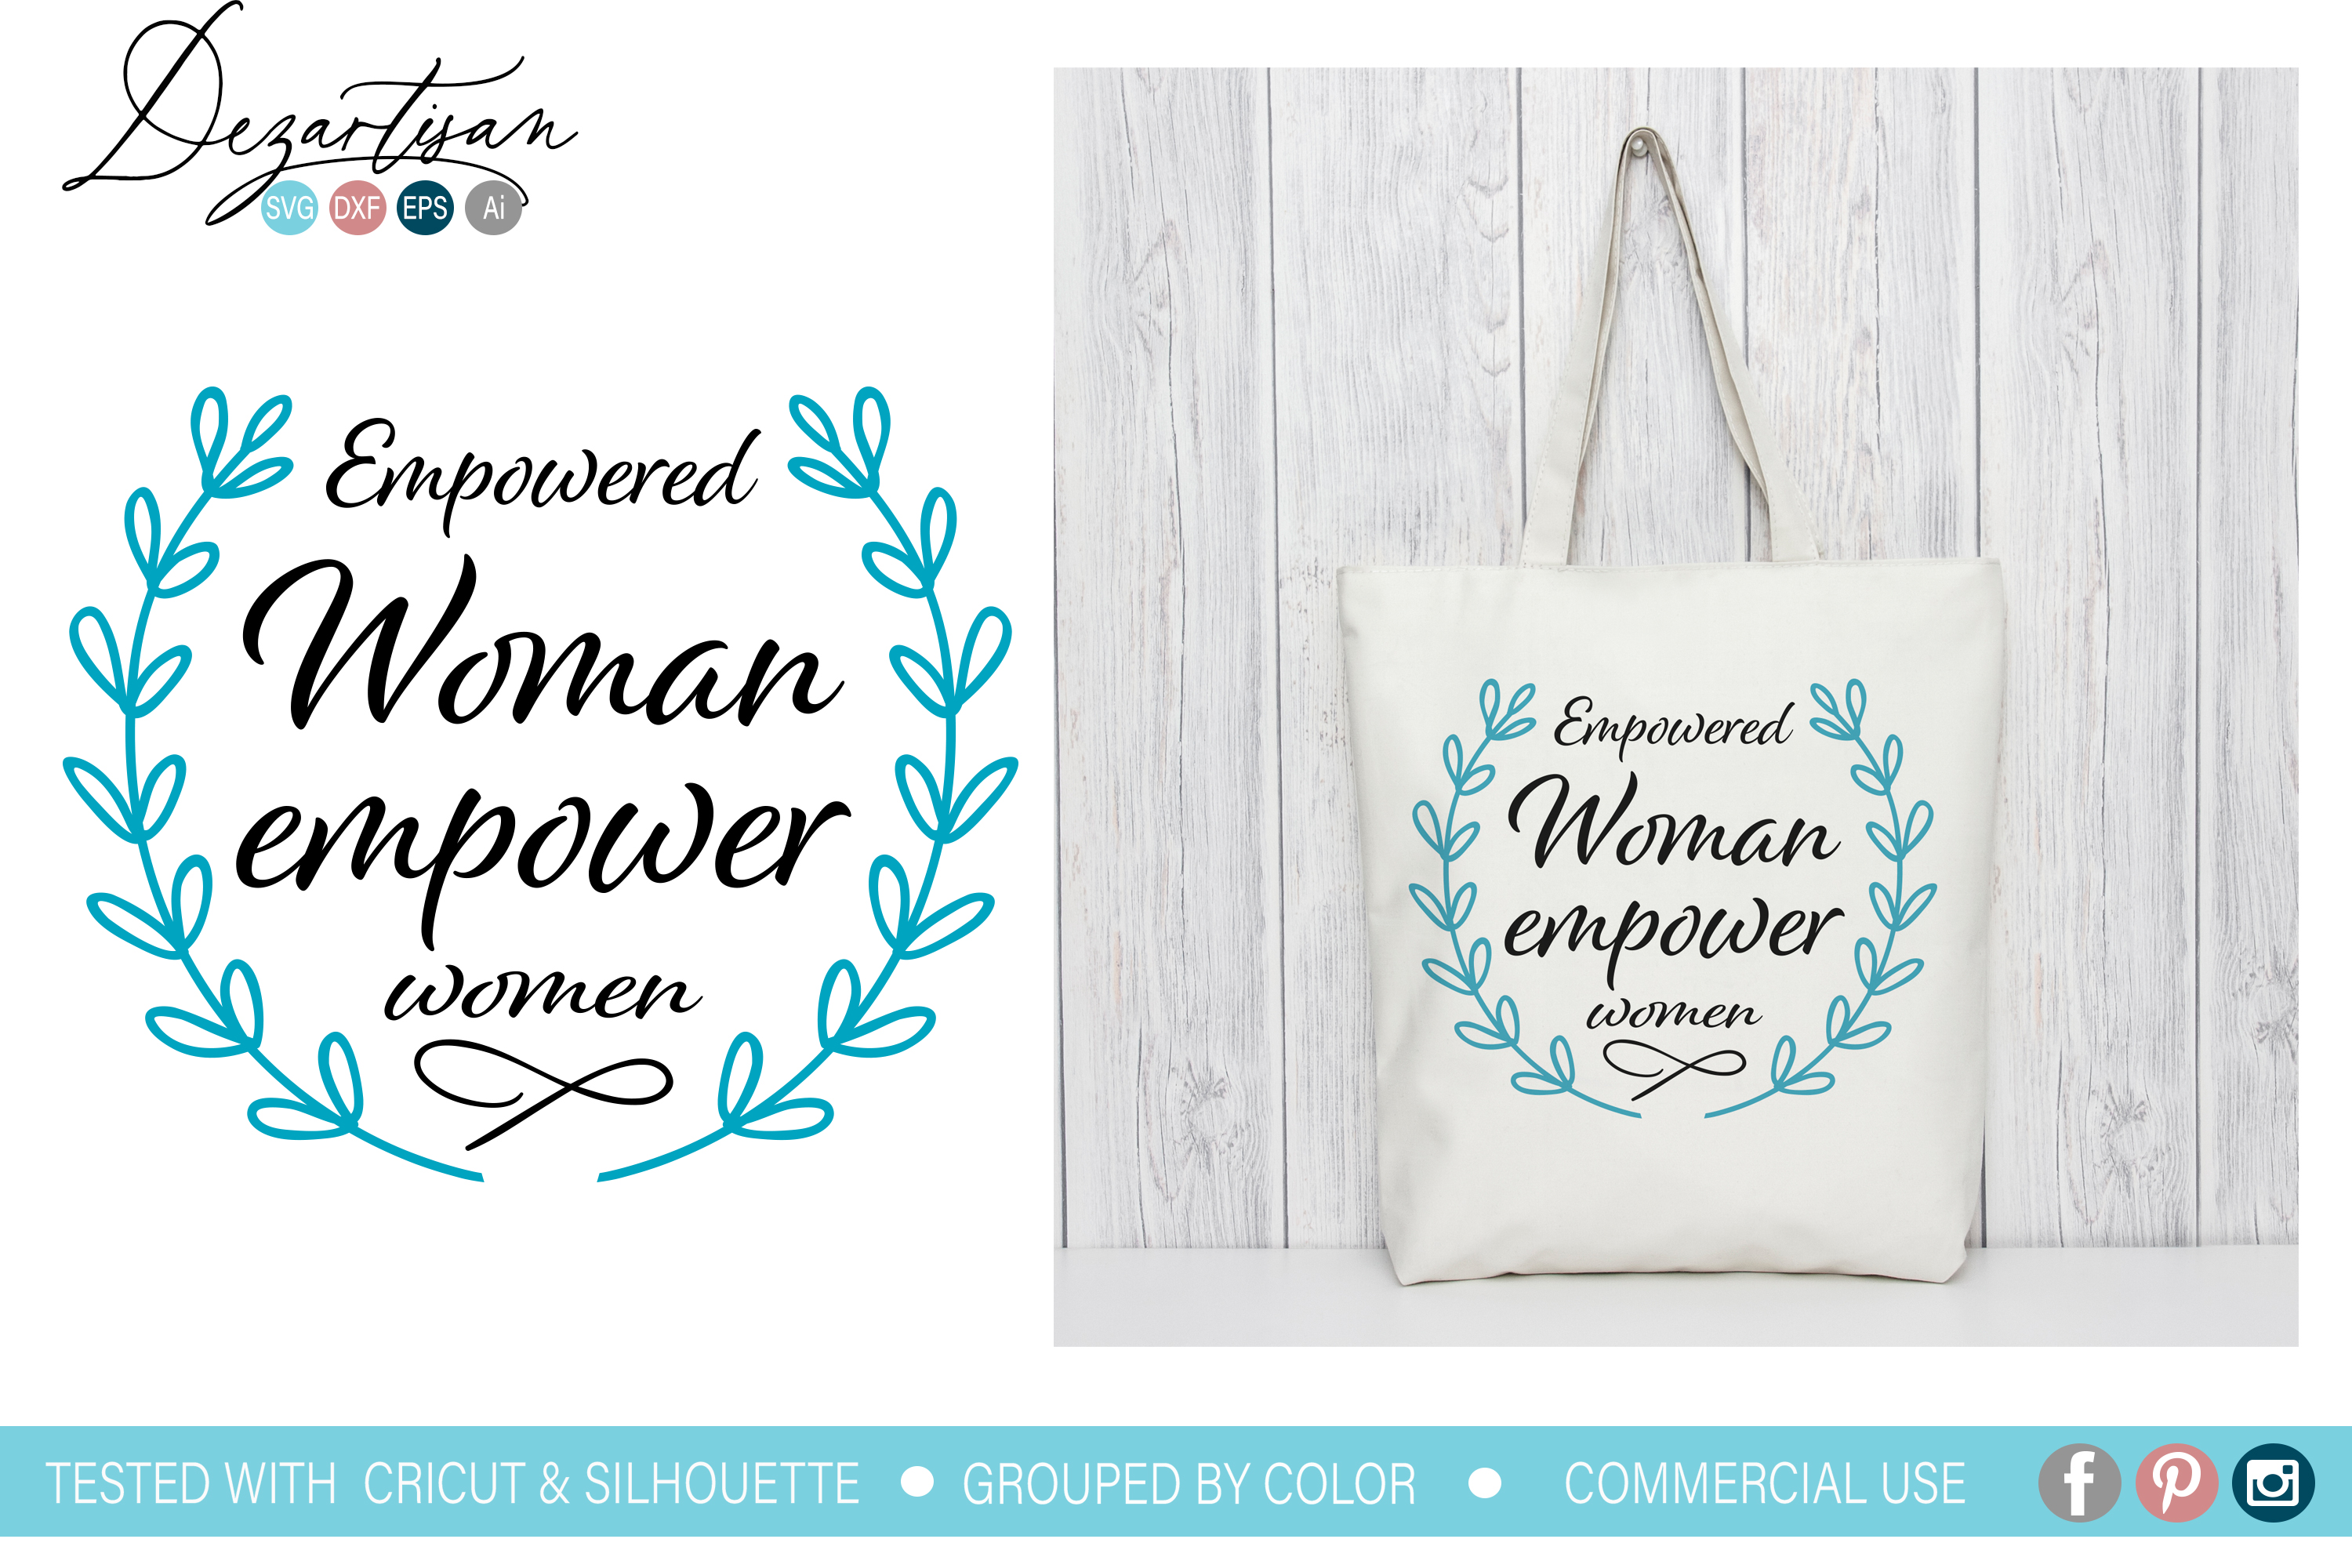 Empowered woman empower women SVG DXF cut file example image 1